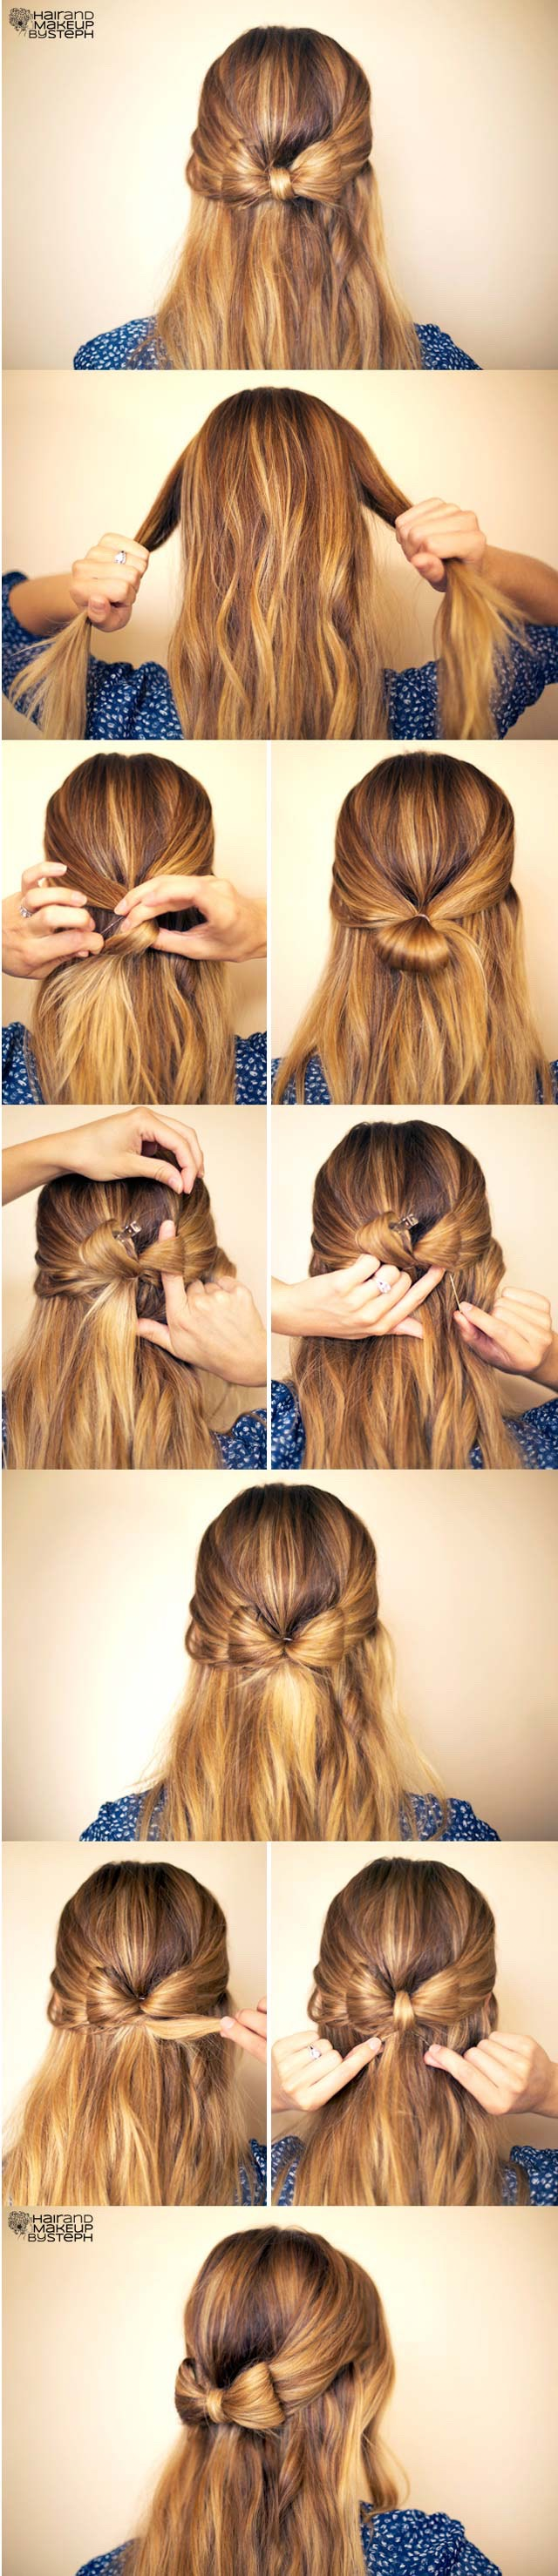 How To Make Hair Bow ✨